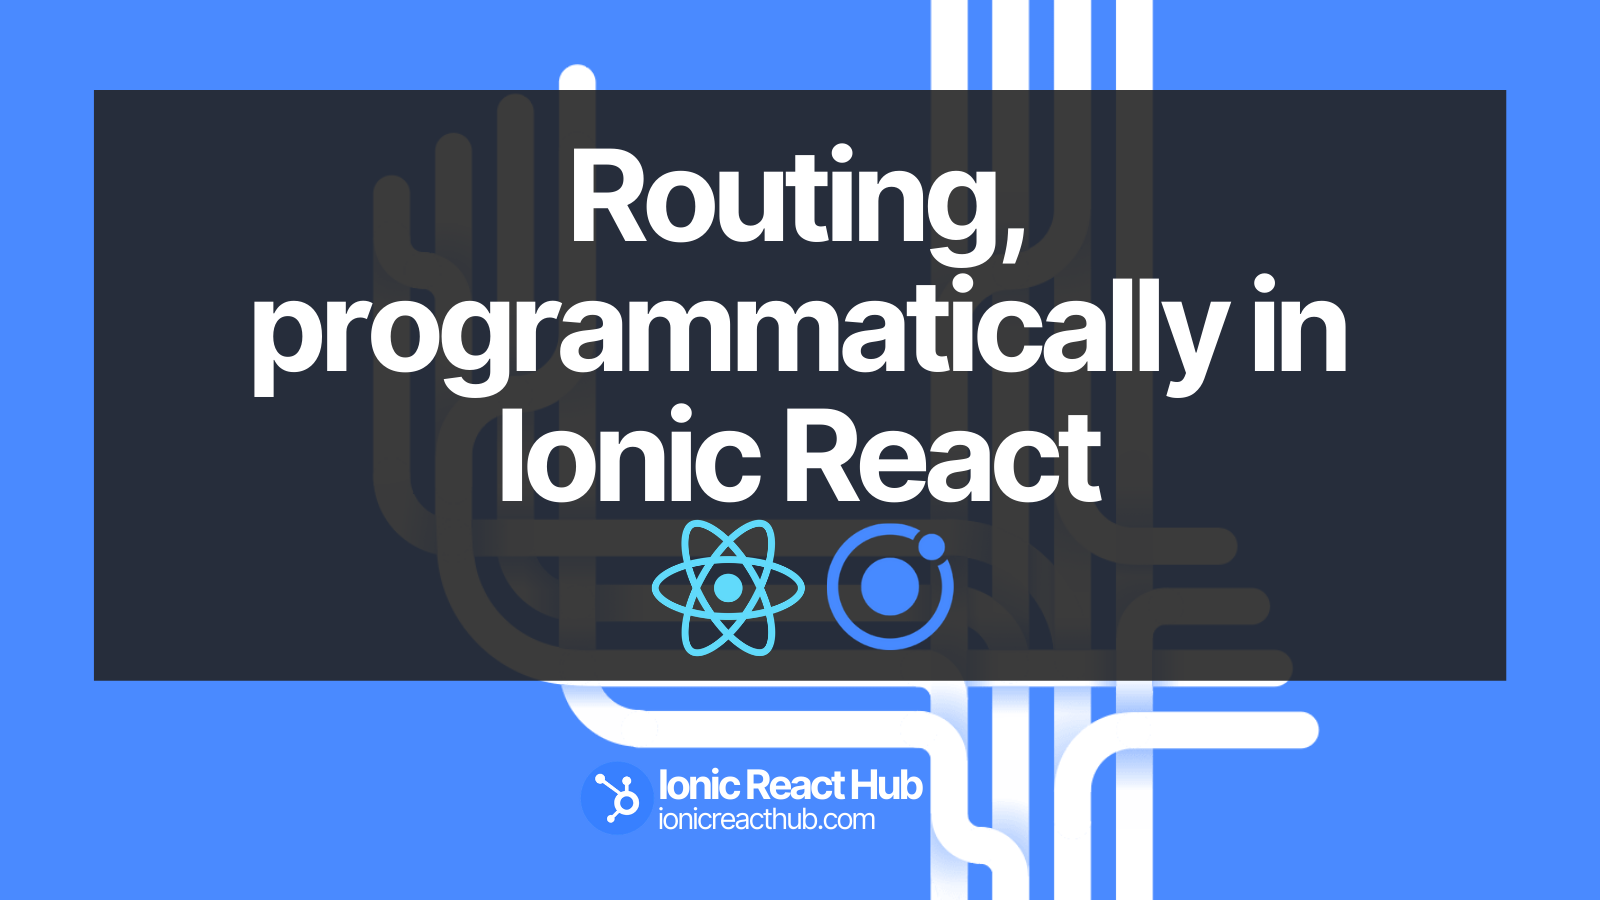 Ionic React Hub Blog - Routing, programmatically in Ionic React